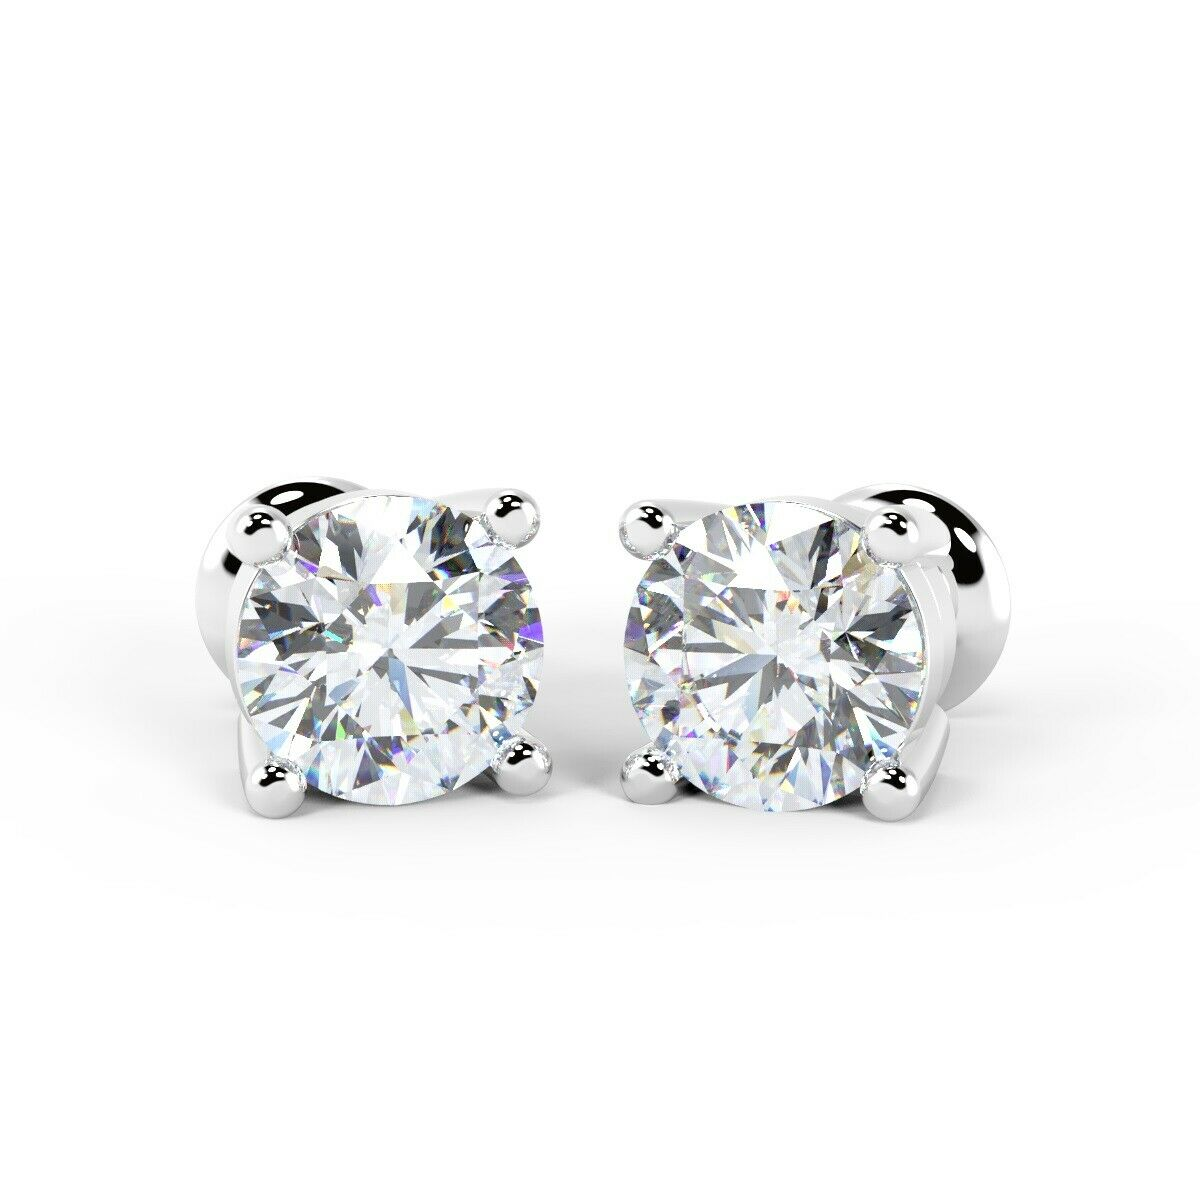 1.25 Carat 4 Claw Diamond Stud Earrings, 18k White gold UK Hallmarked